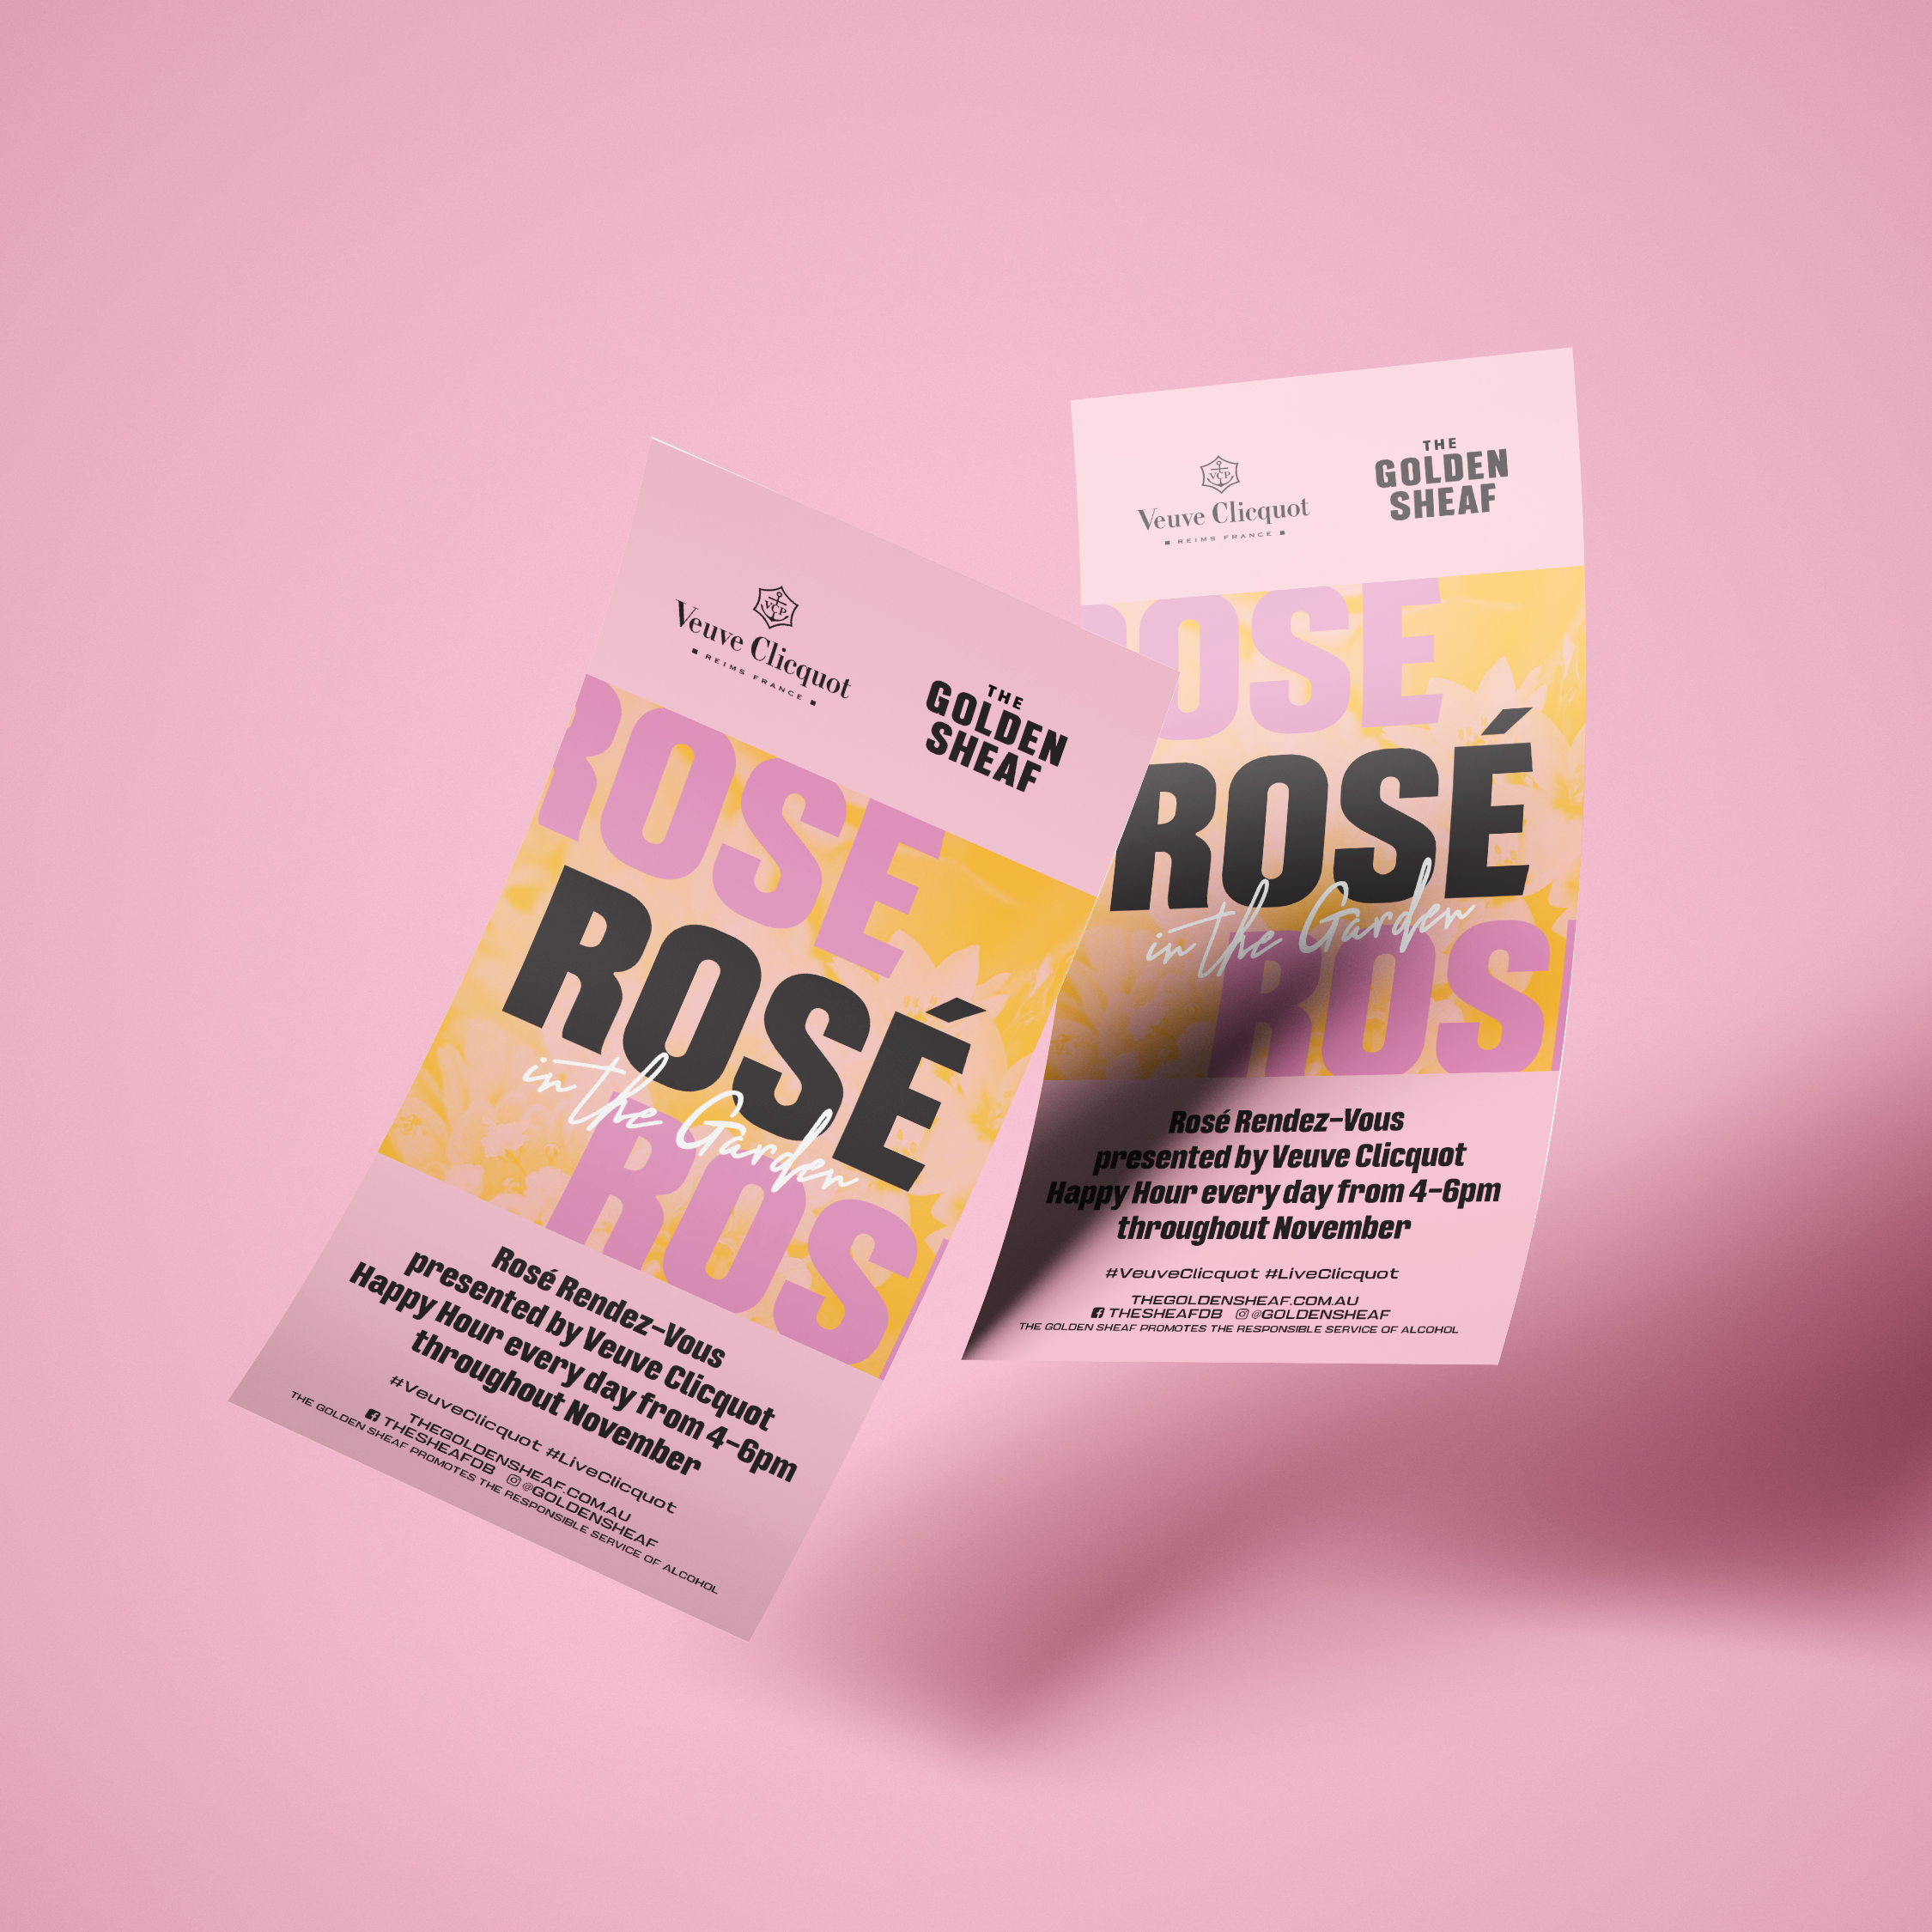 sydney design social golden sheaf double bay rose in the garden flyer design